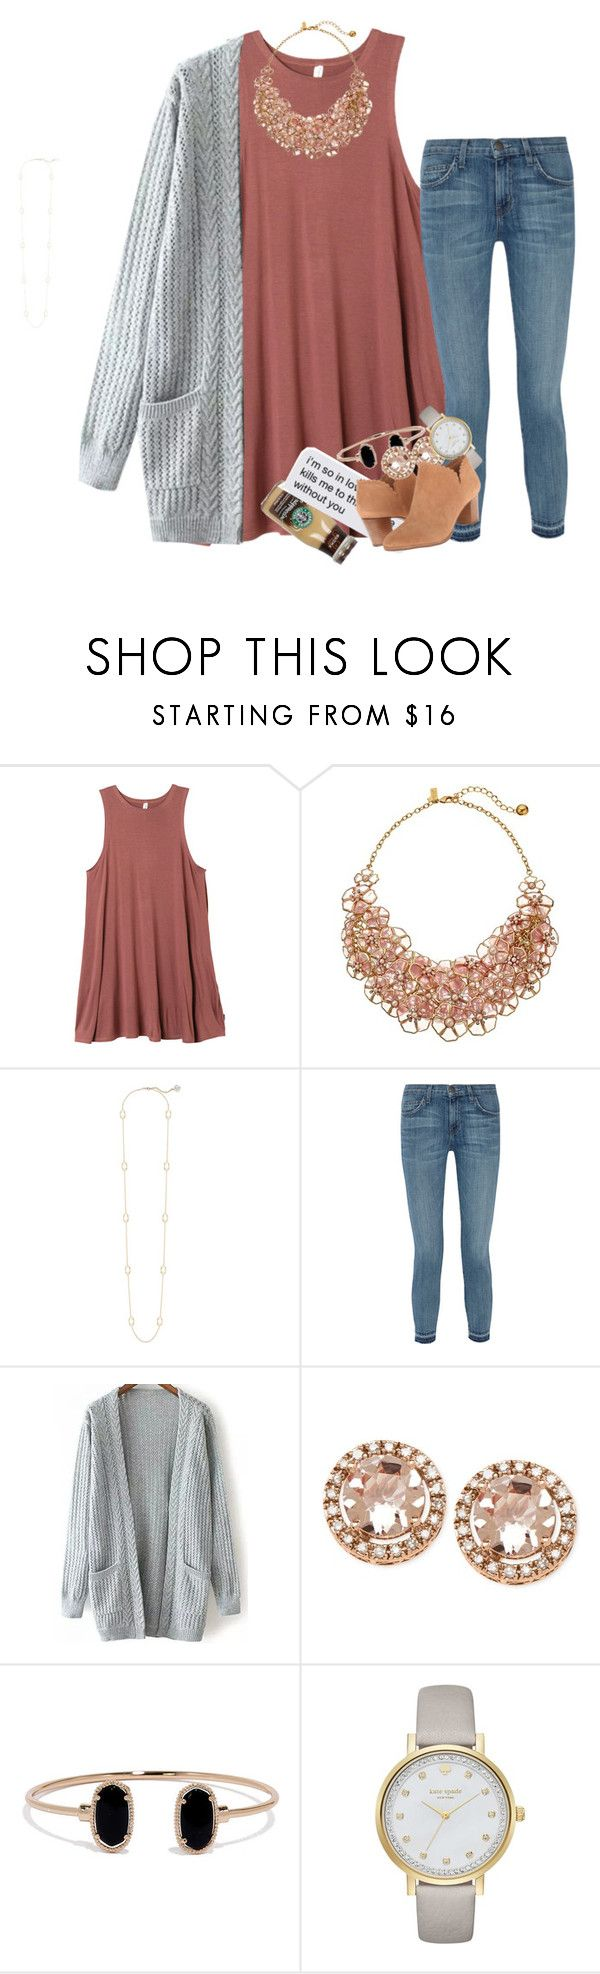 ed on Polyvore featuring RVCA, Kate Spade, Kendra Scott, Current/Elliott, LULUS and Jack Rogers